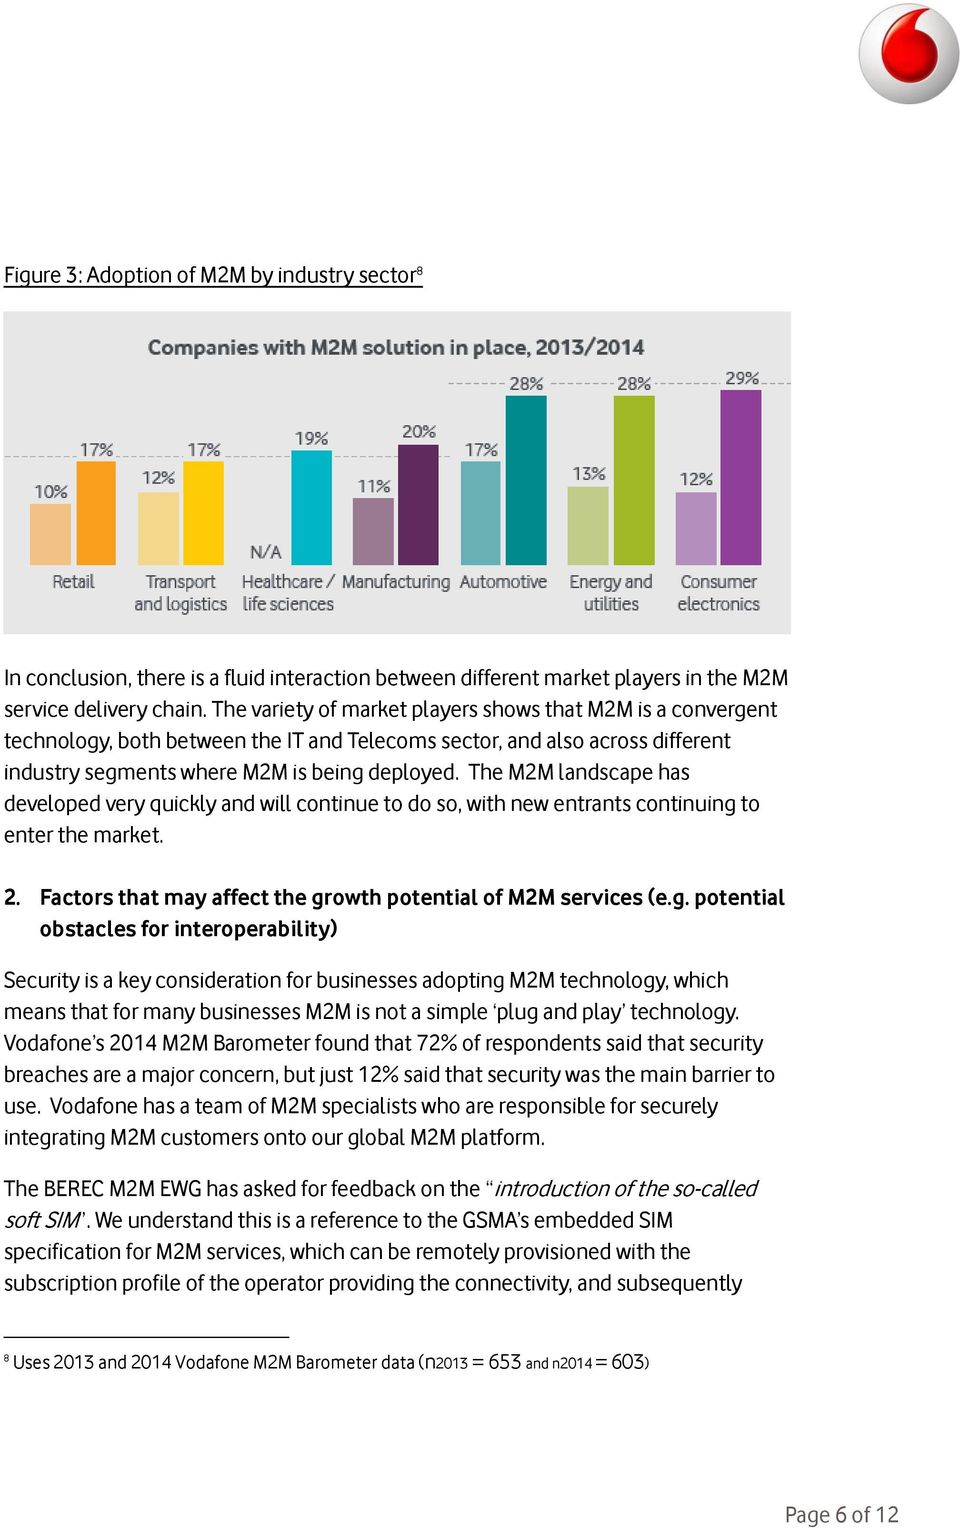 The M2M landscape has developed very quickly and will continue to do so, with new entrants continuing